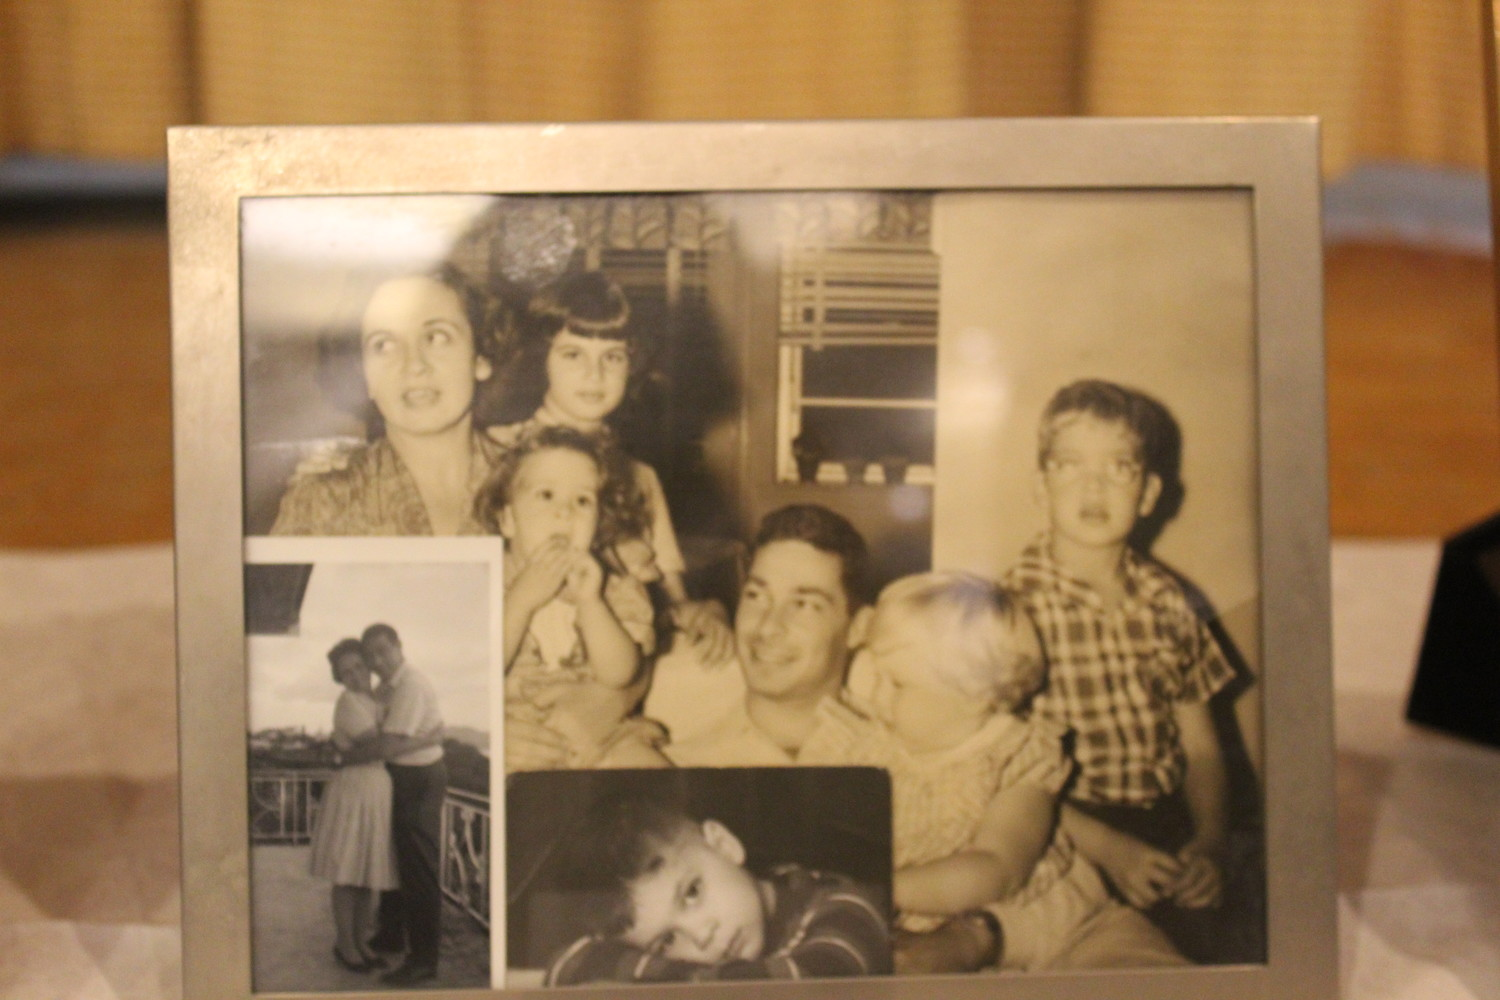 Pictures of the Levy family were on display at the synagogue's Shabbat service last Friday.